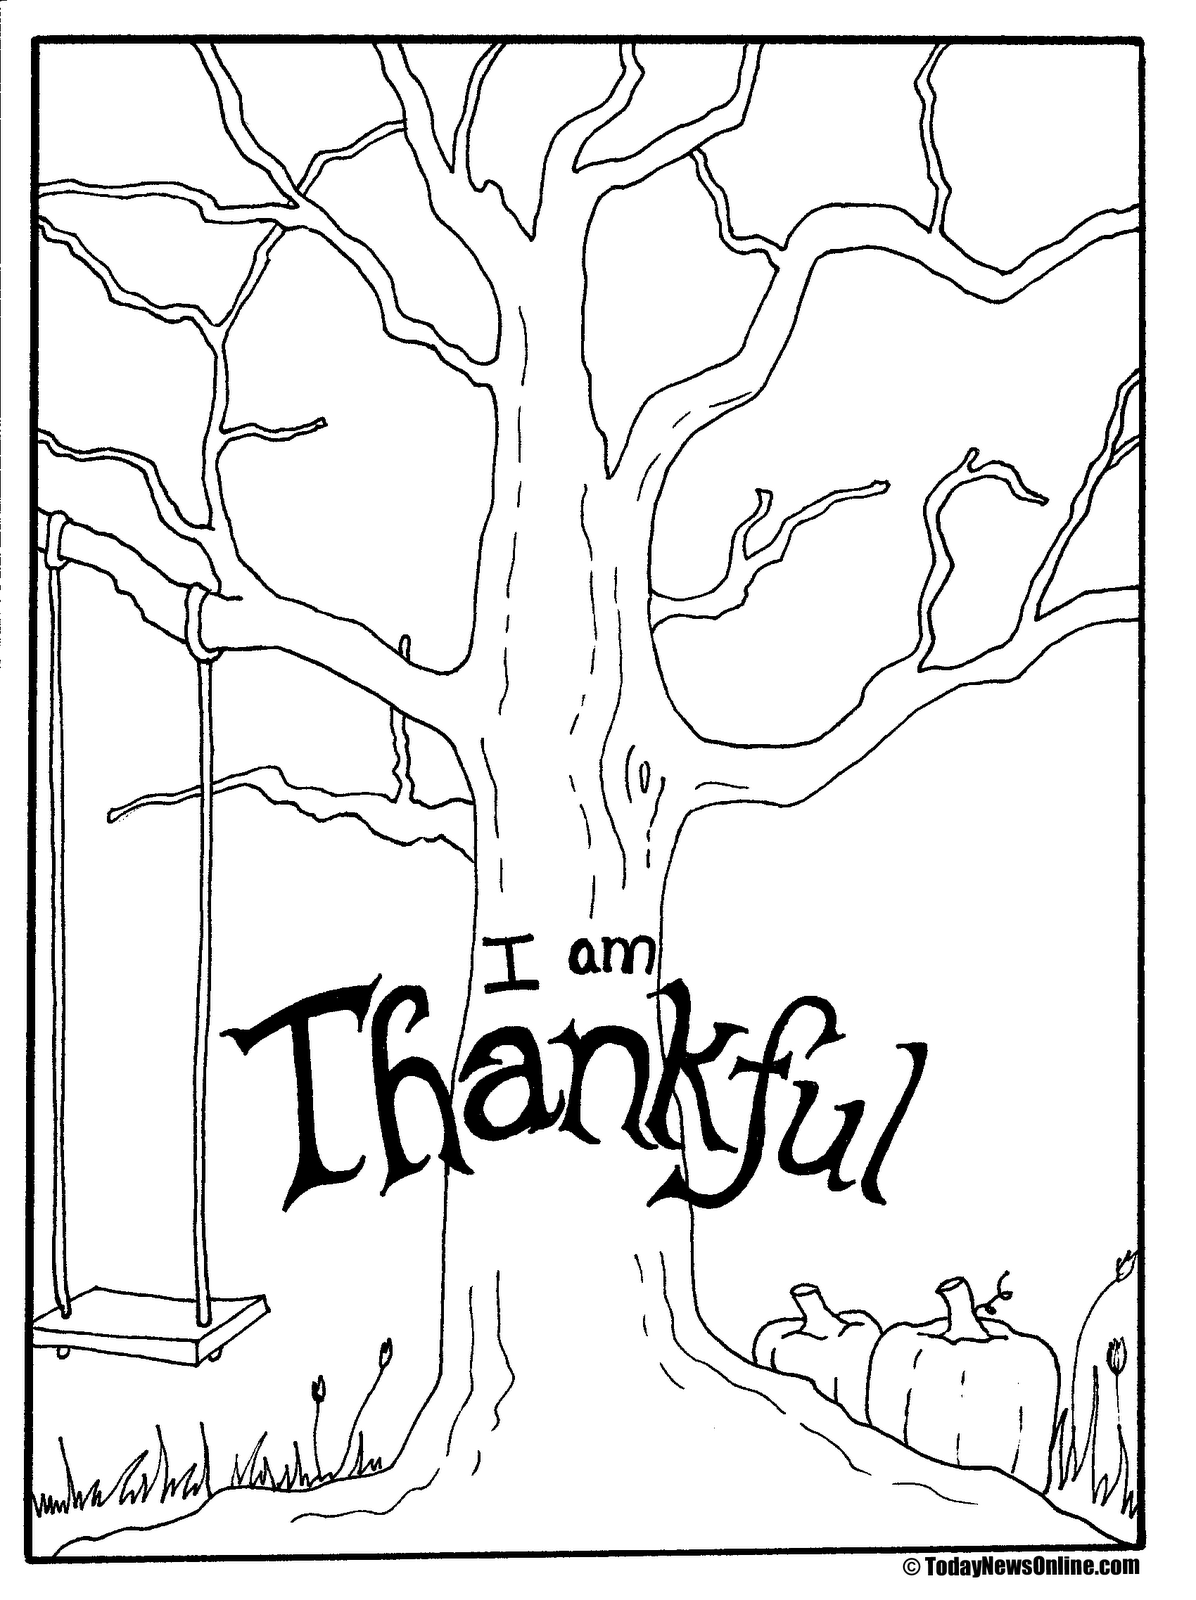 LDS Activity Day Ideas: Thanksgiving Tree